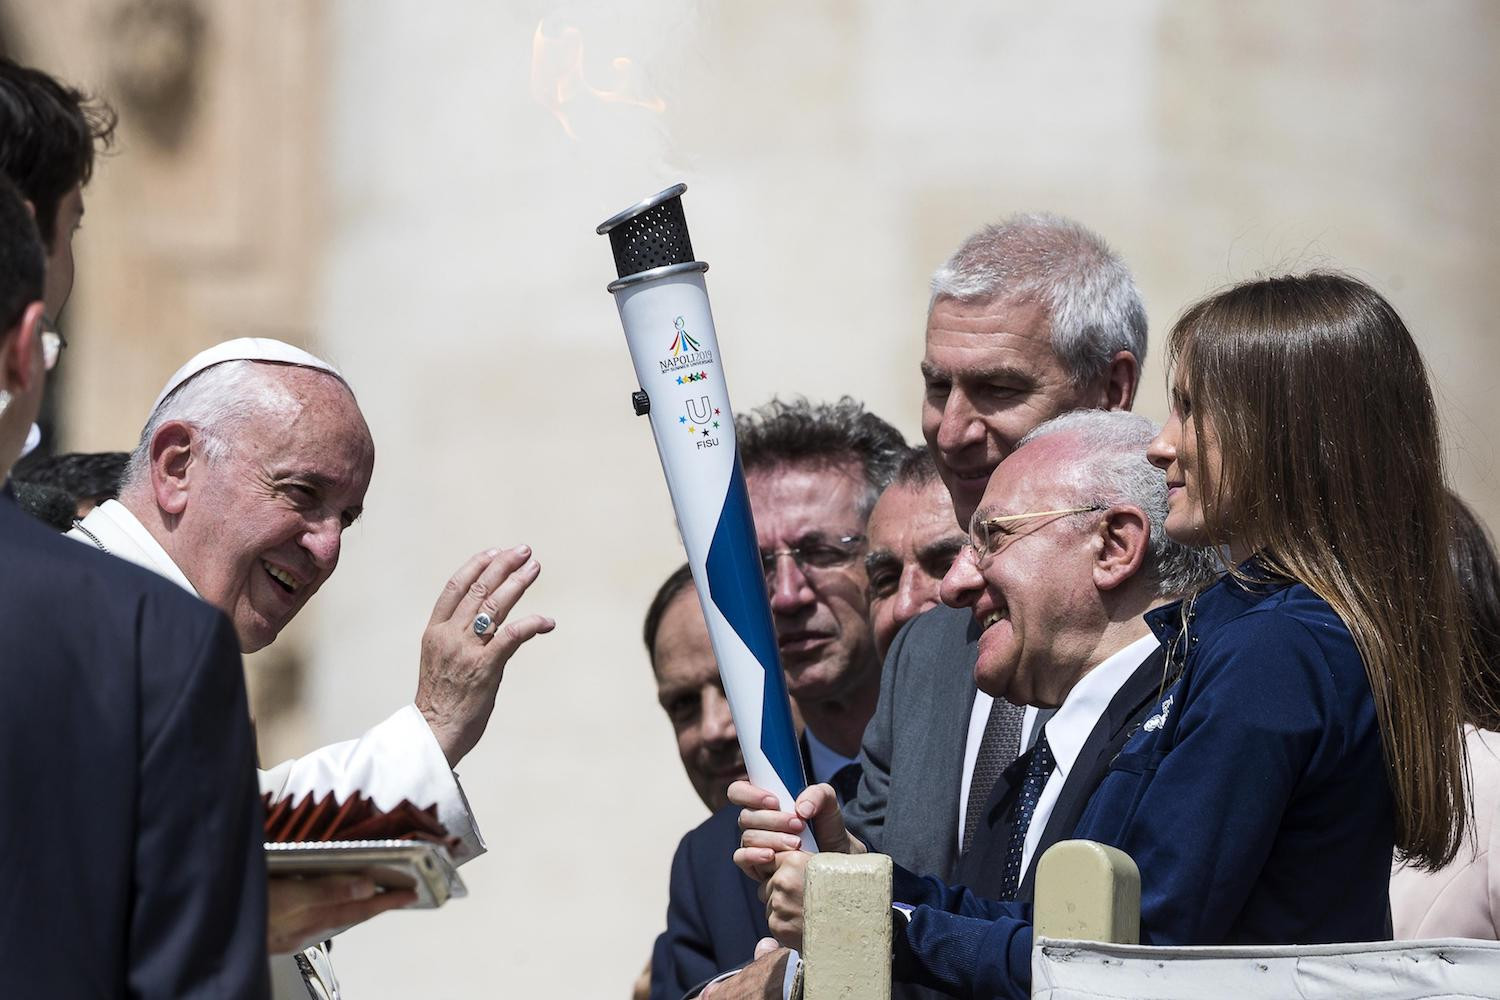 Naples 2019 Torch Relay reaches Vatican to be blessed by Pope